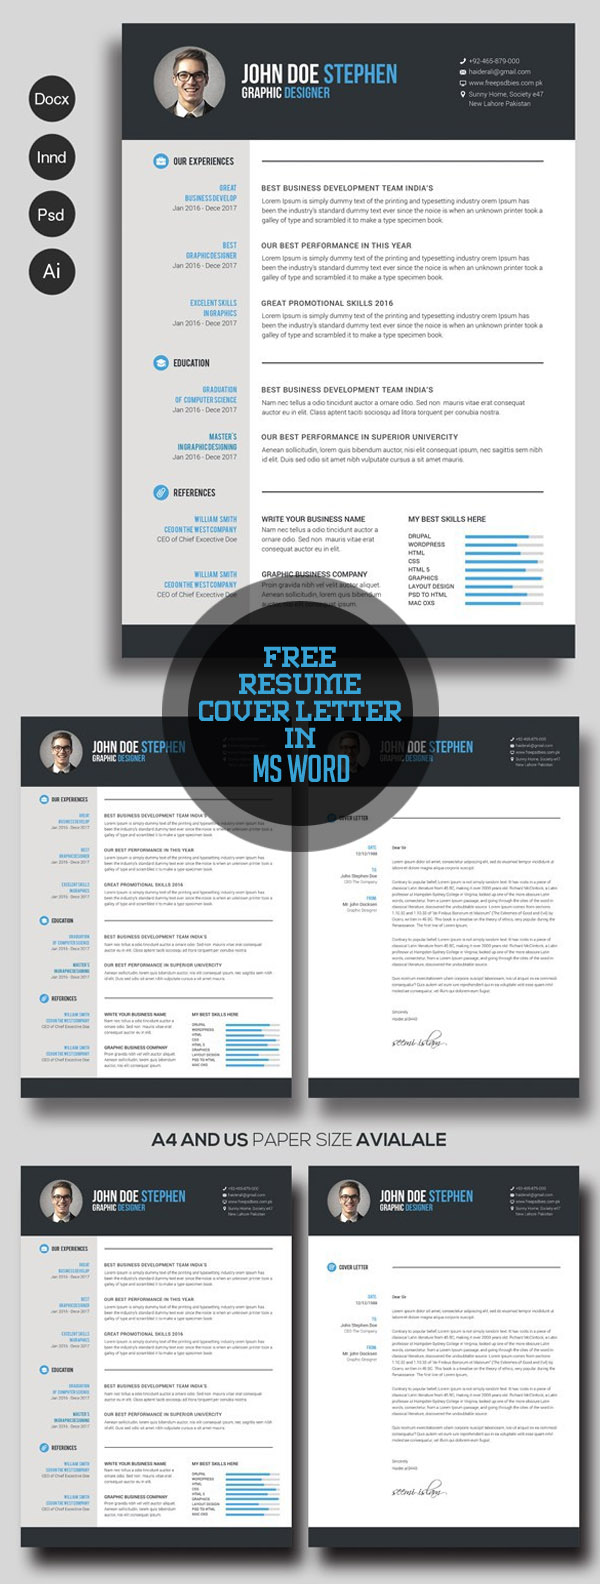 20 free cv resume templates 2017 freebies graphic design junction free resume cover letter in ms word flashek